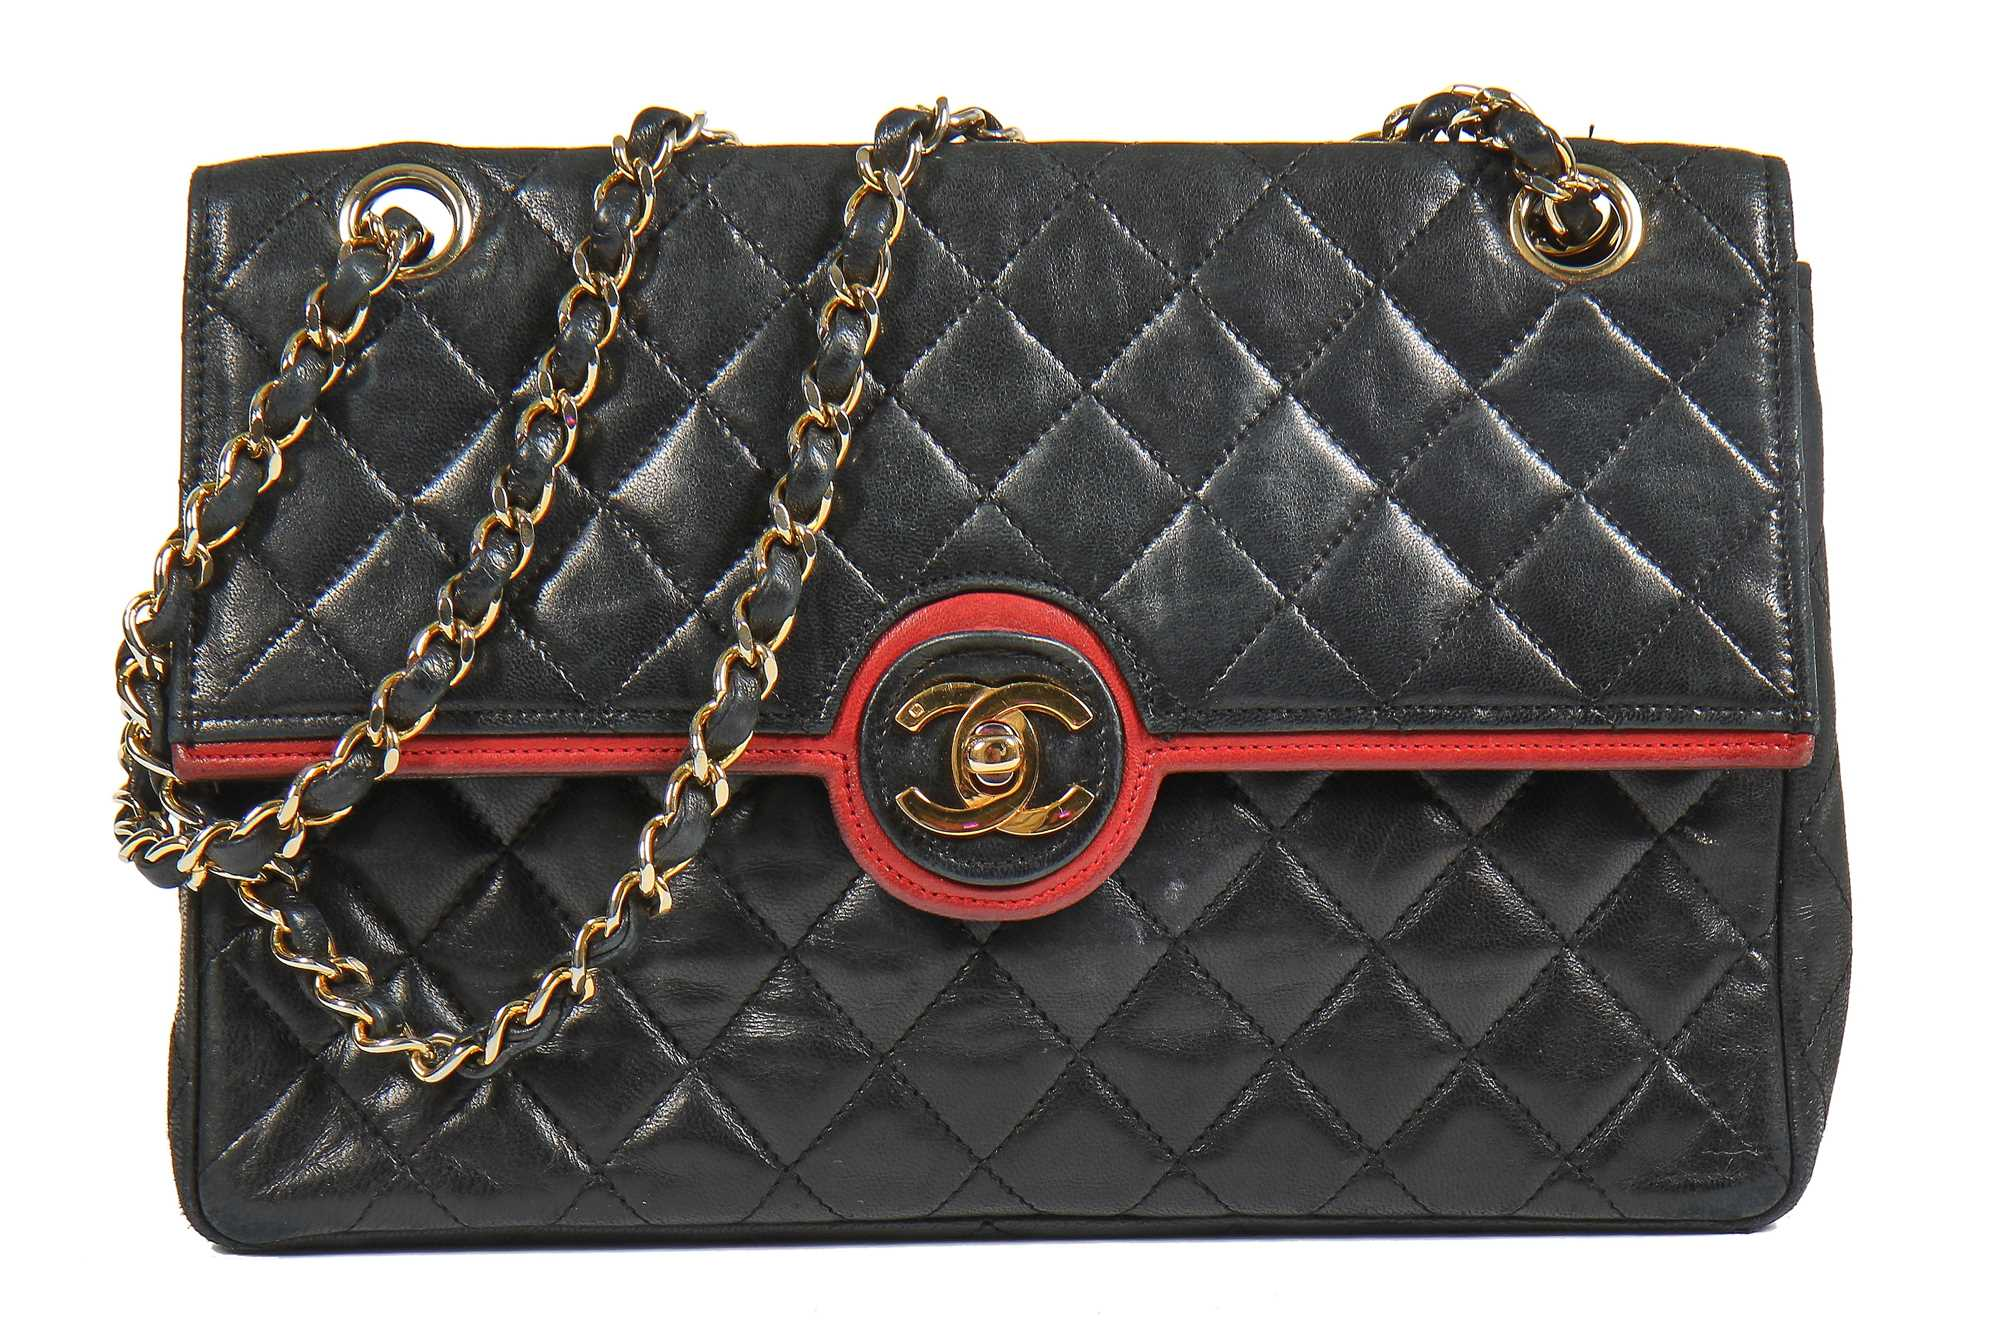 Lot 6 - A Chanel black quilted lambskin leather flap bag, 1980s